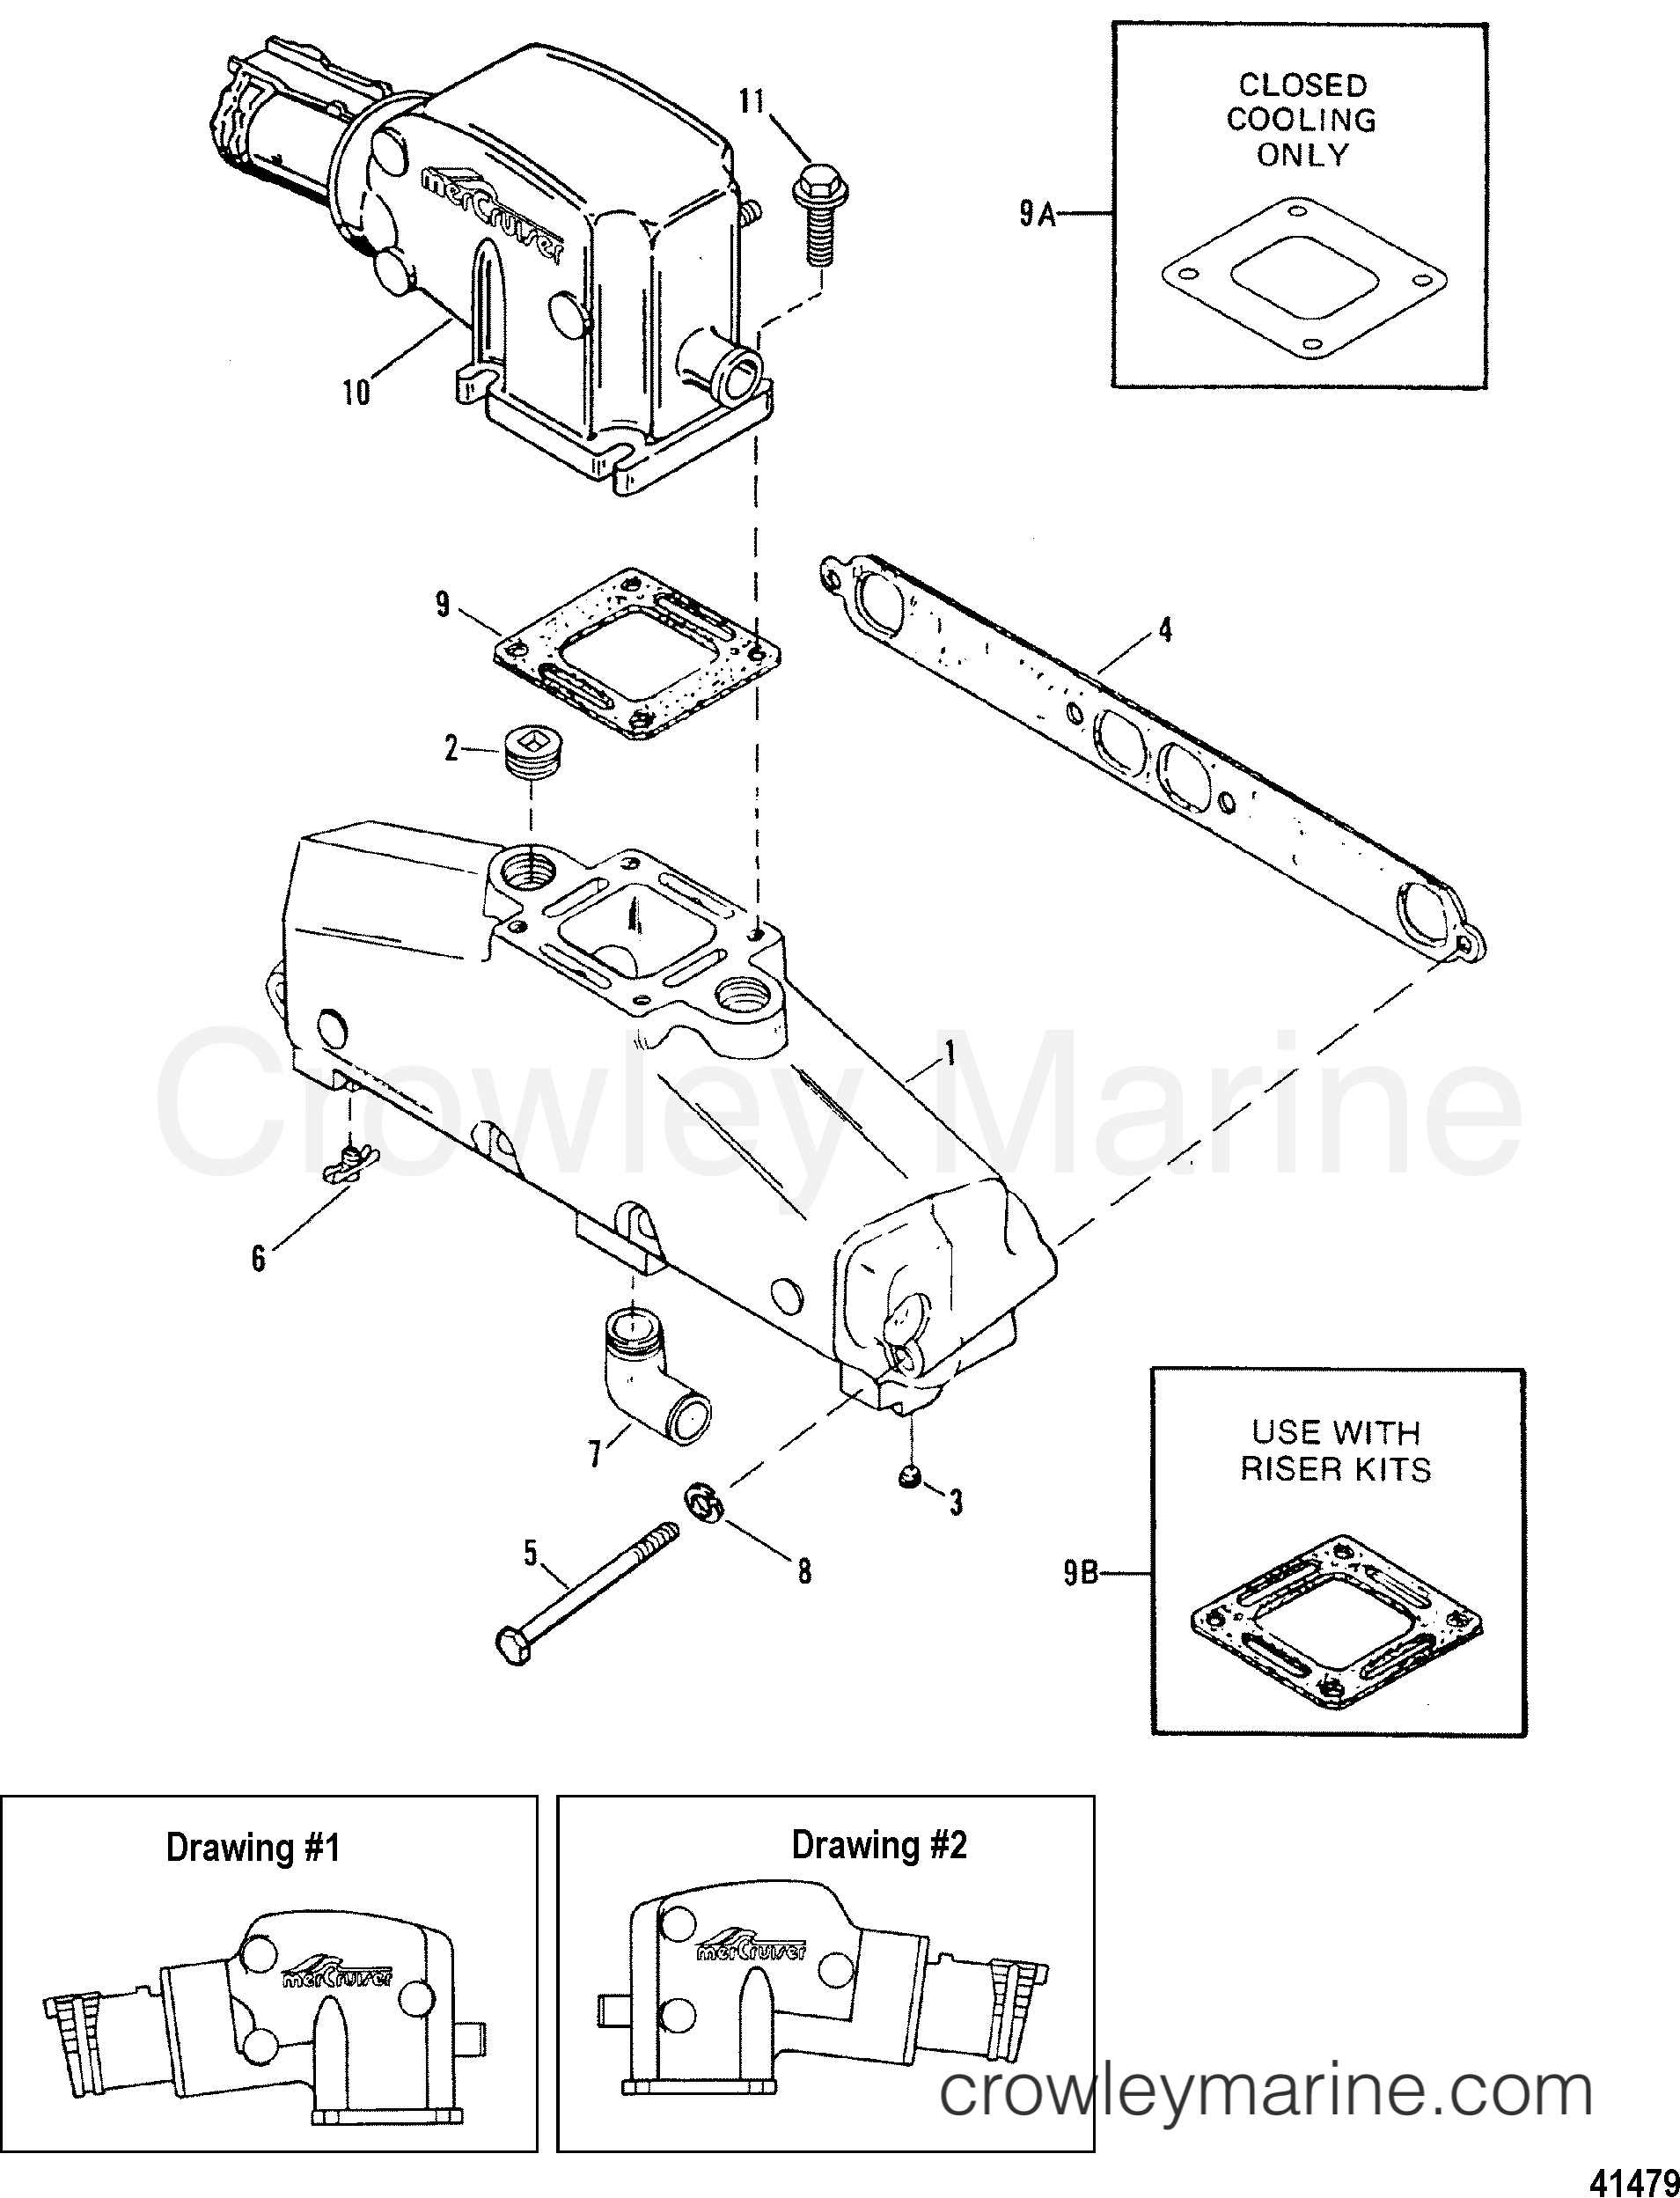 1988 Mercury Outboard Diagram Cooling Electrical Wiring Diagrams 150 Xr2 Exhaust Manifold And Elbowstainless Steel Starter